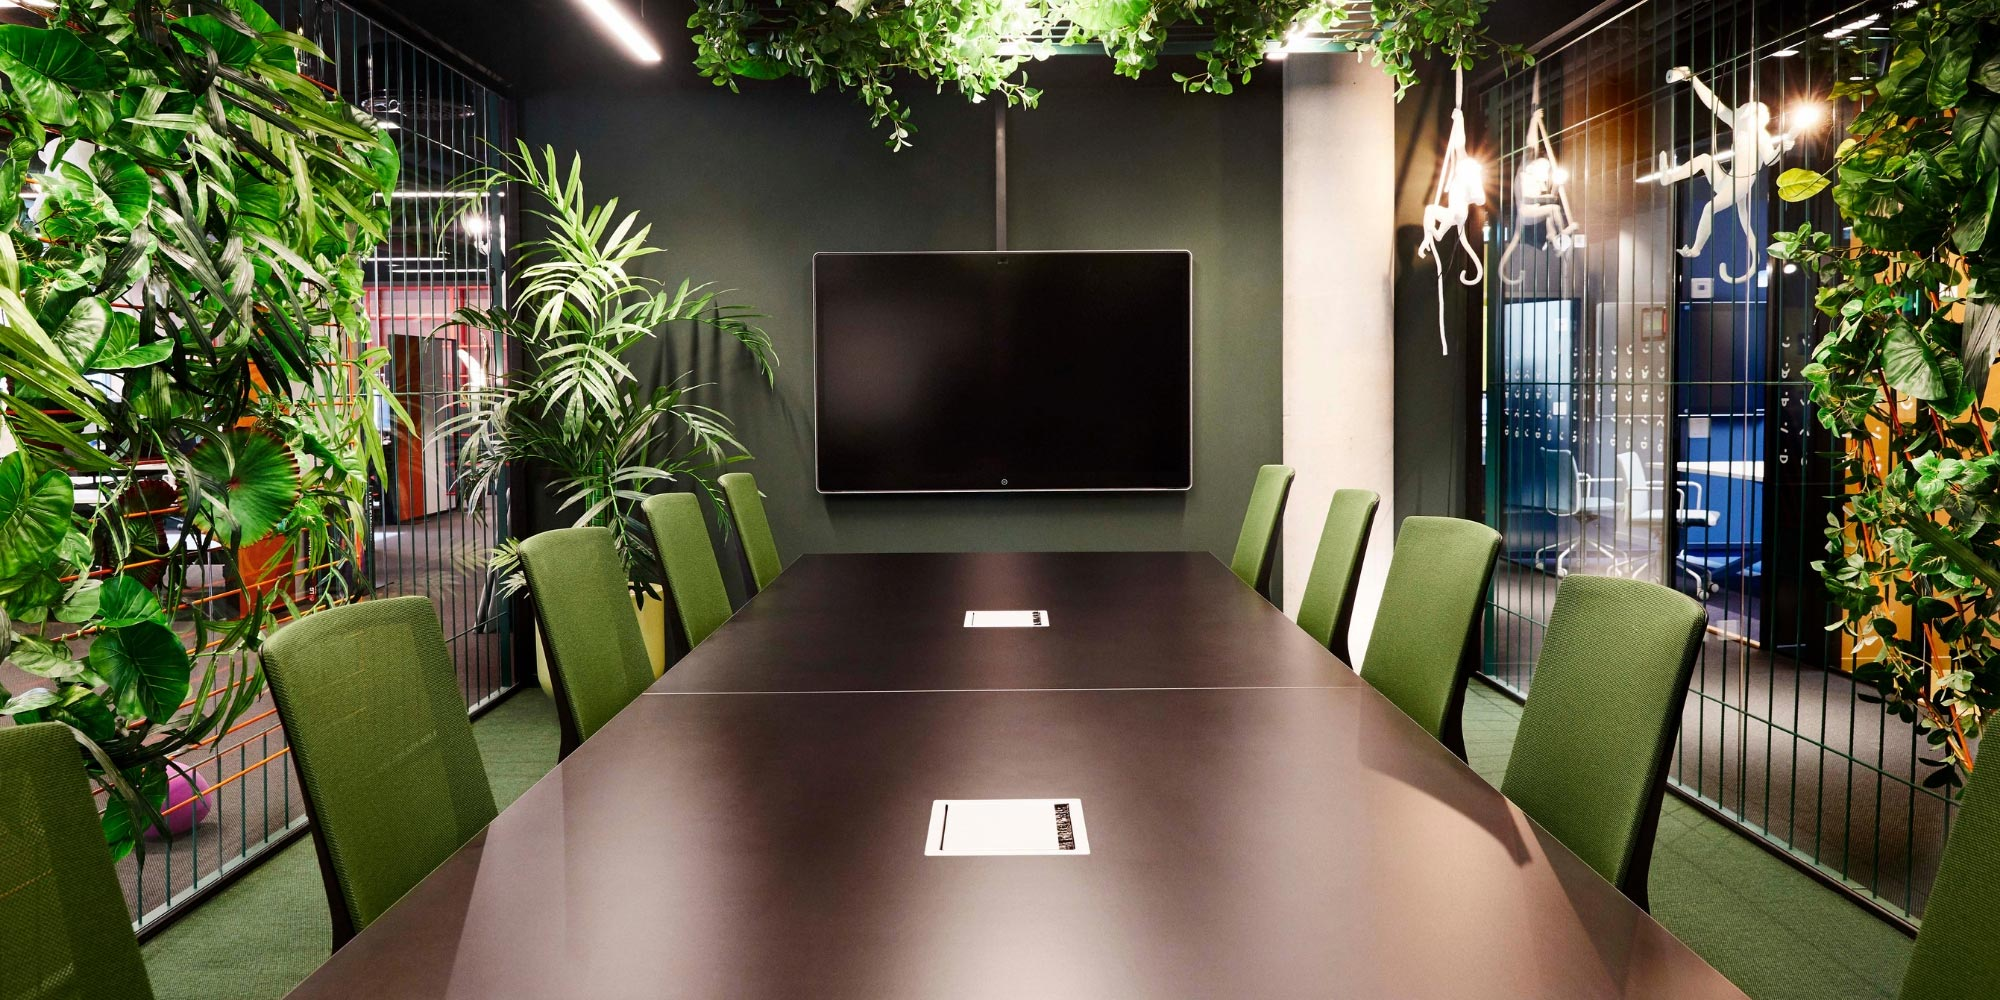 green meeting room with HÅG Futu chairs round a table and plants on the walls